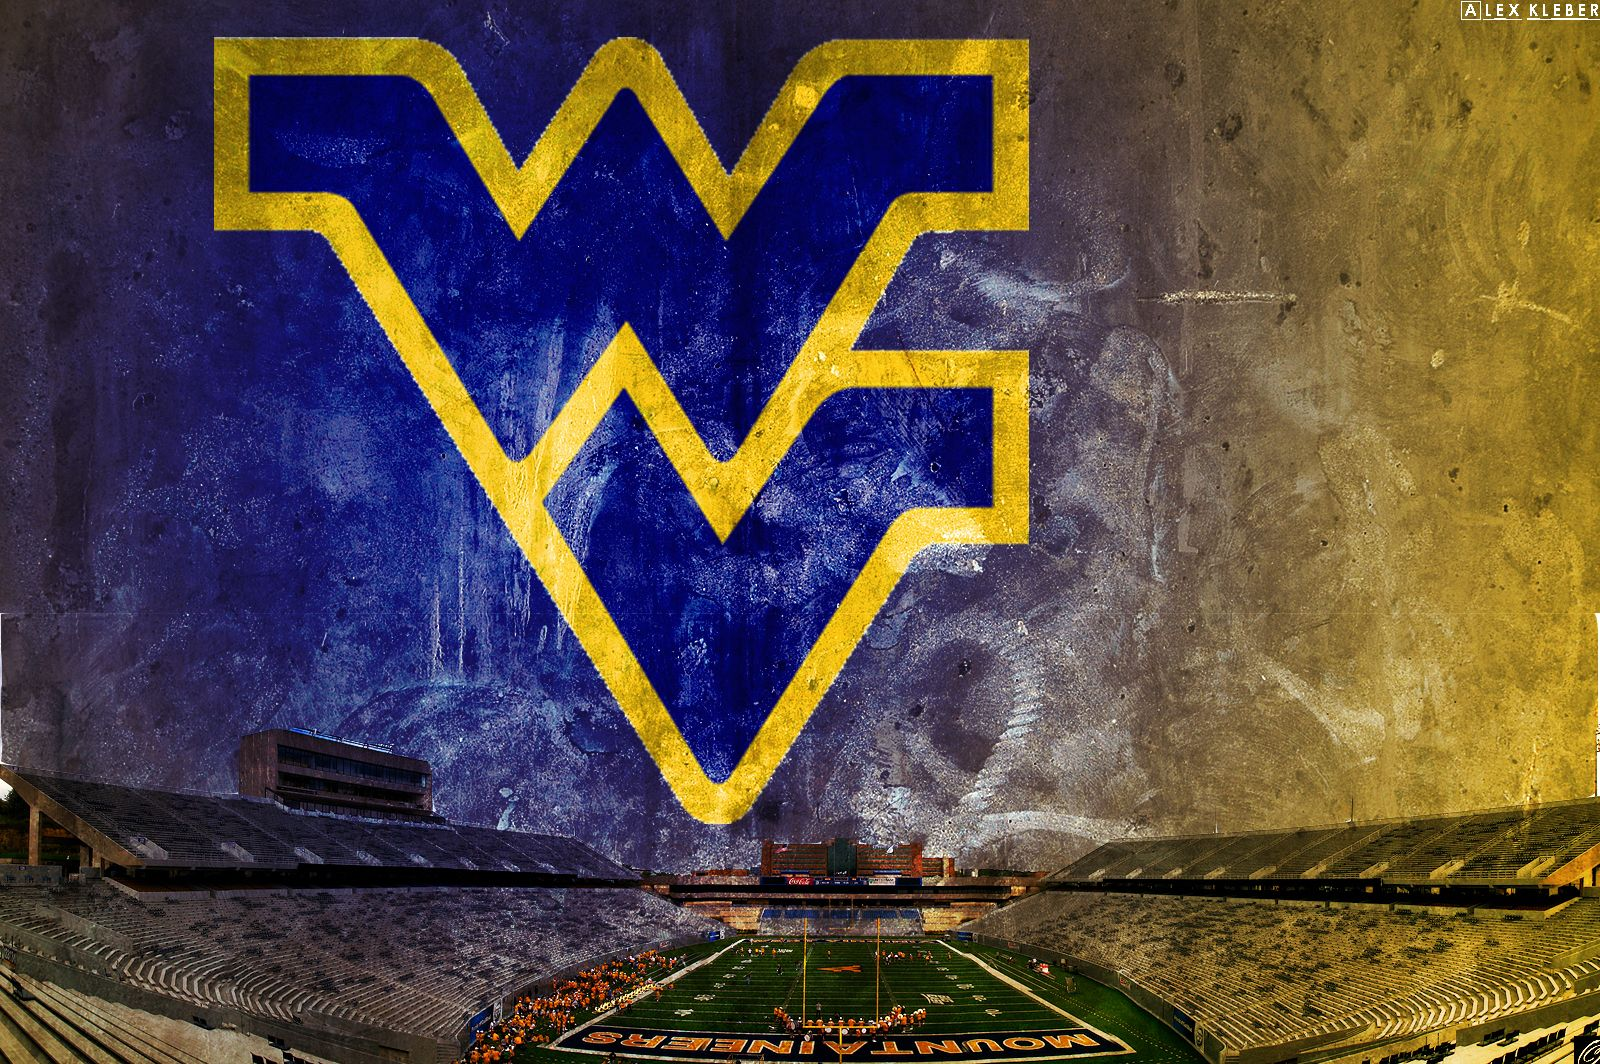 west virginia wallpaper  pictures of wvu mountaineers | WVU Wallpaper by klebz | Things I ...